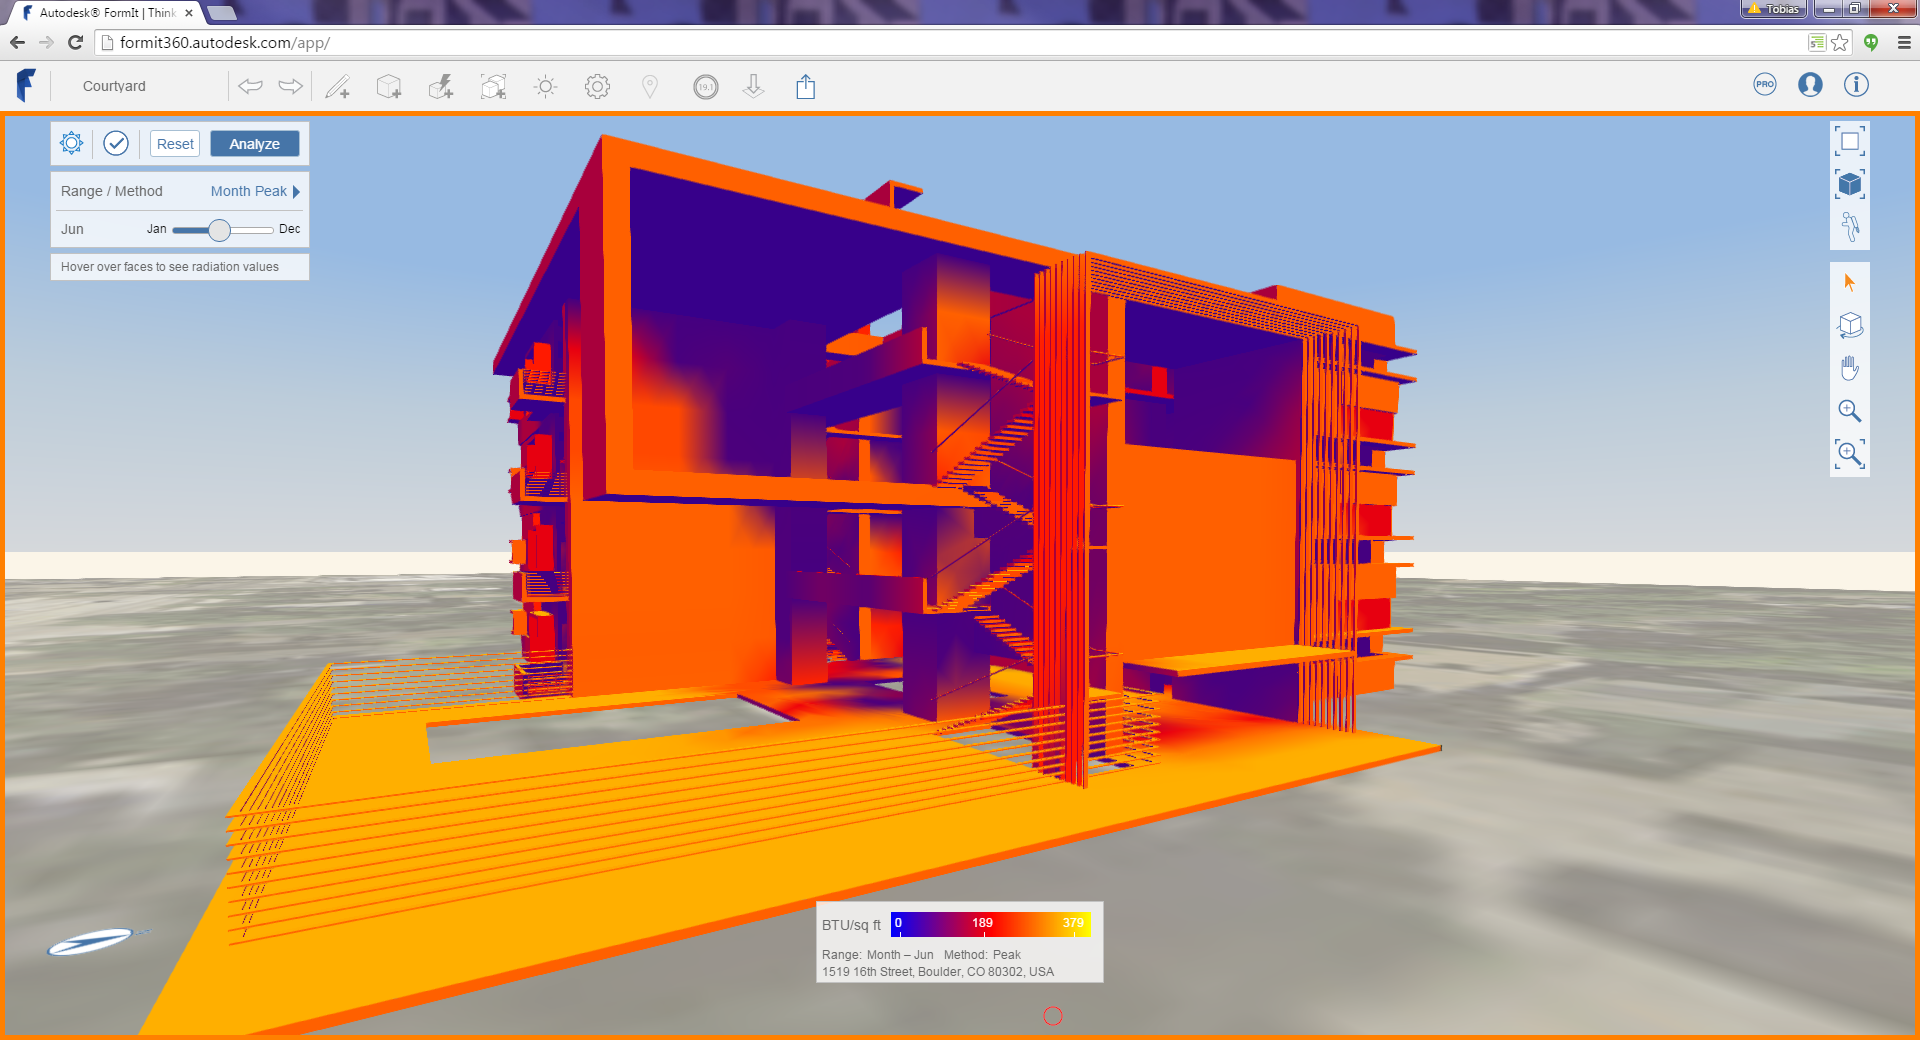 insight autodesk y formit